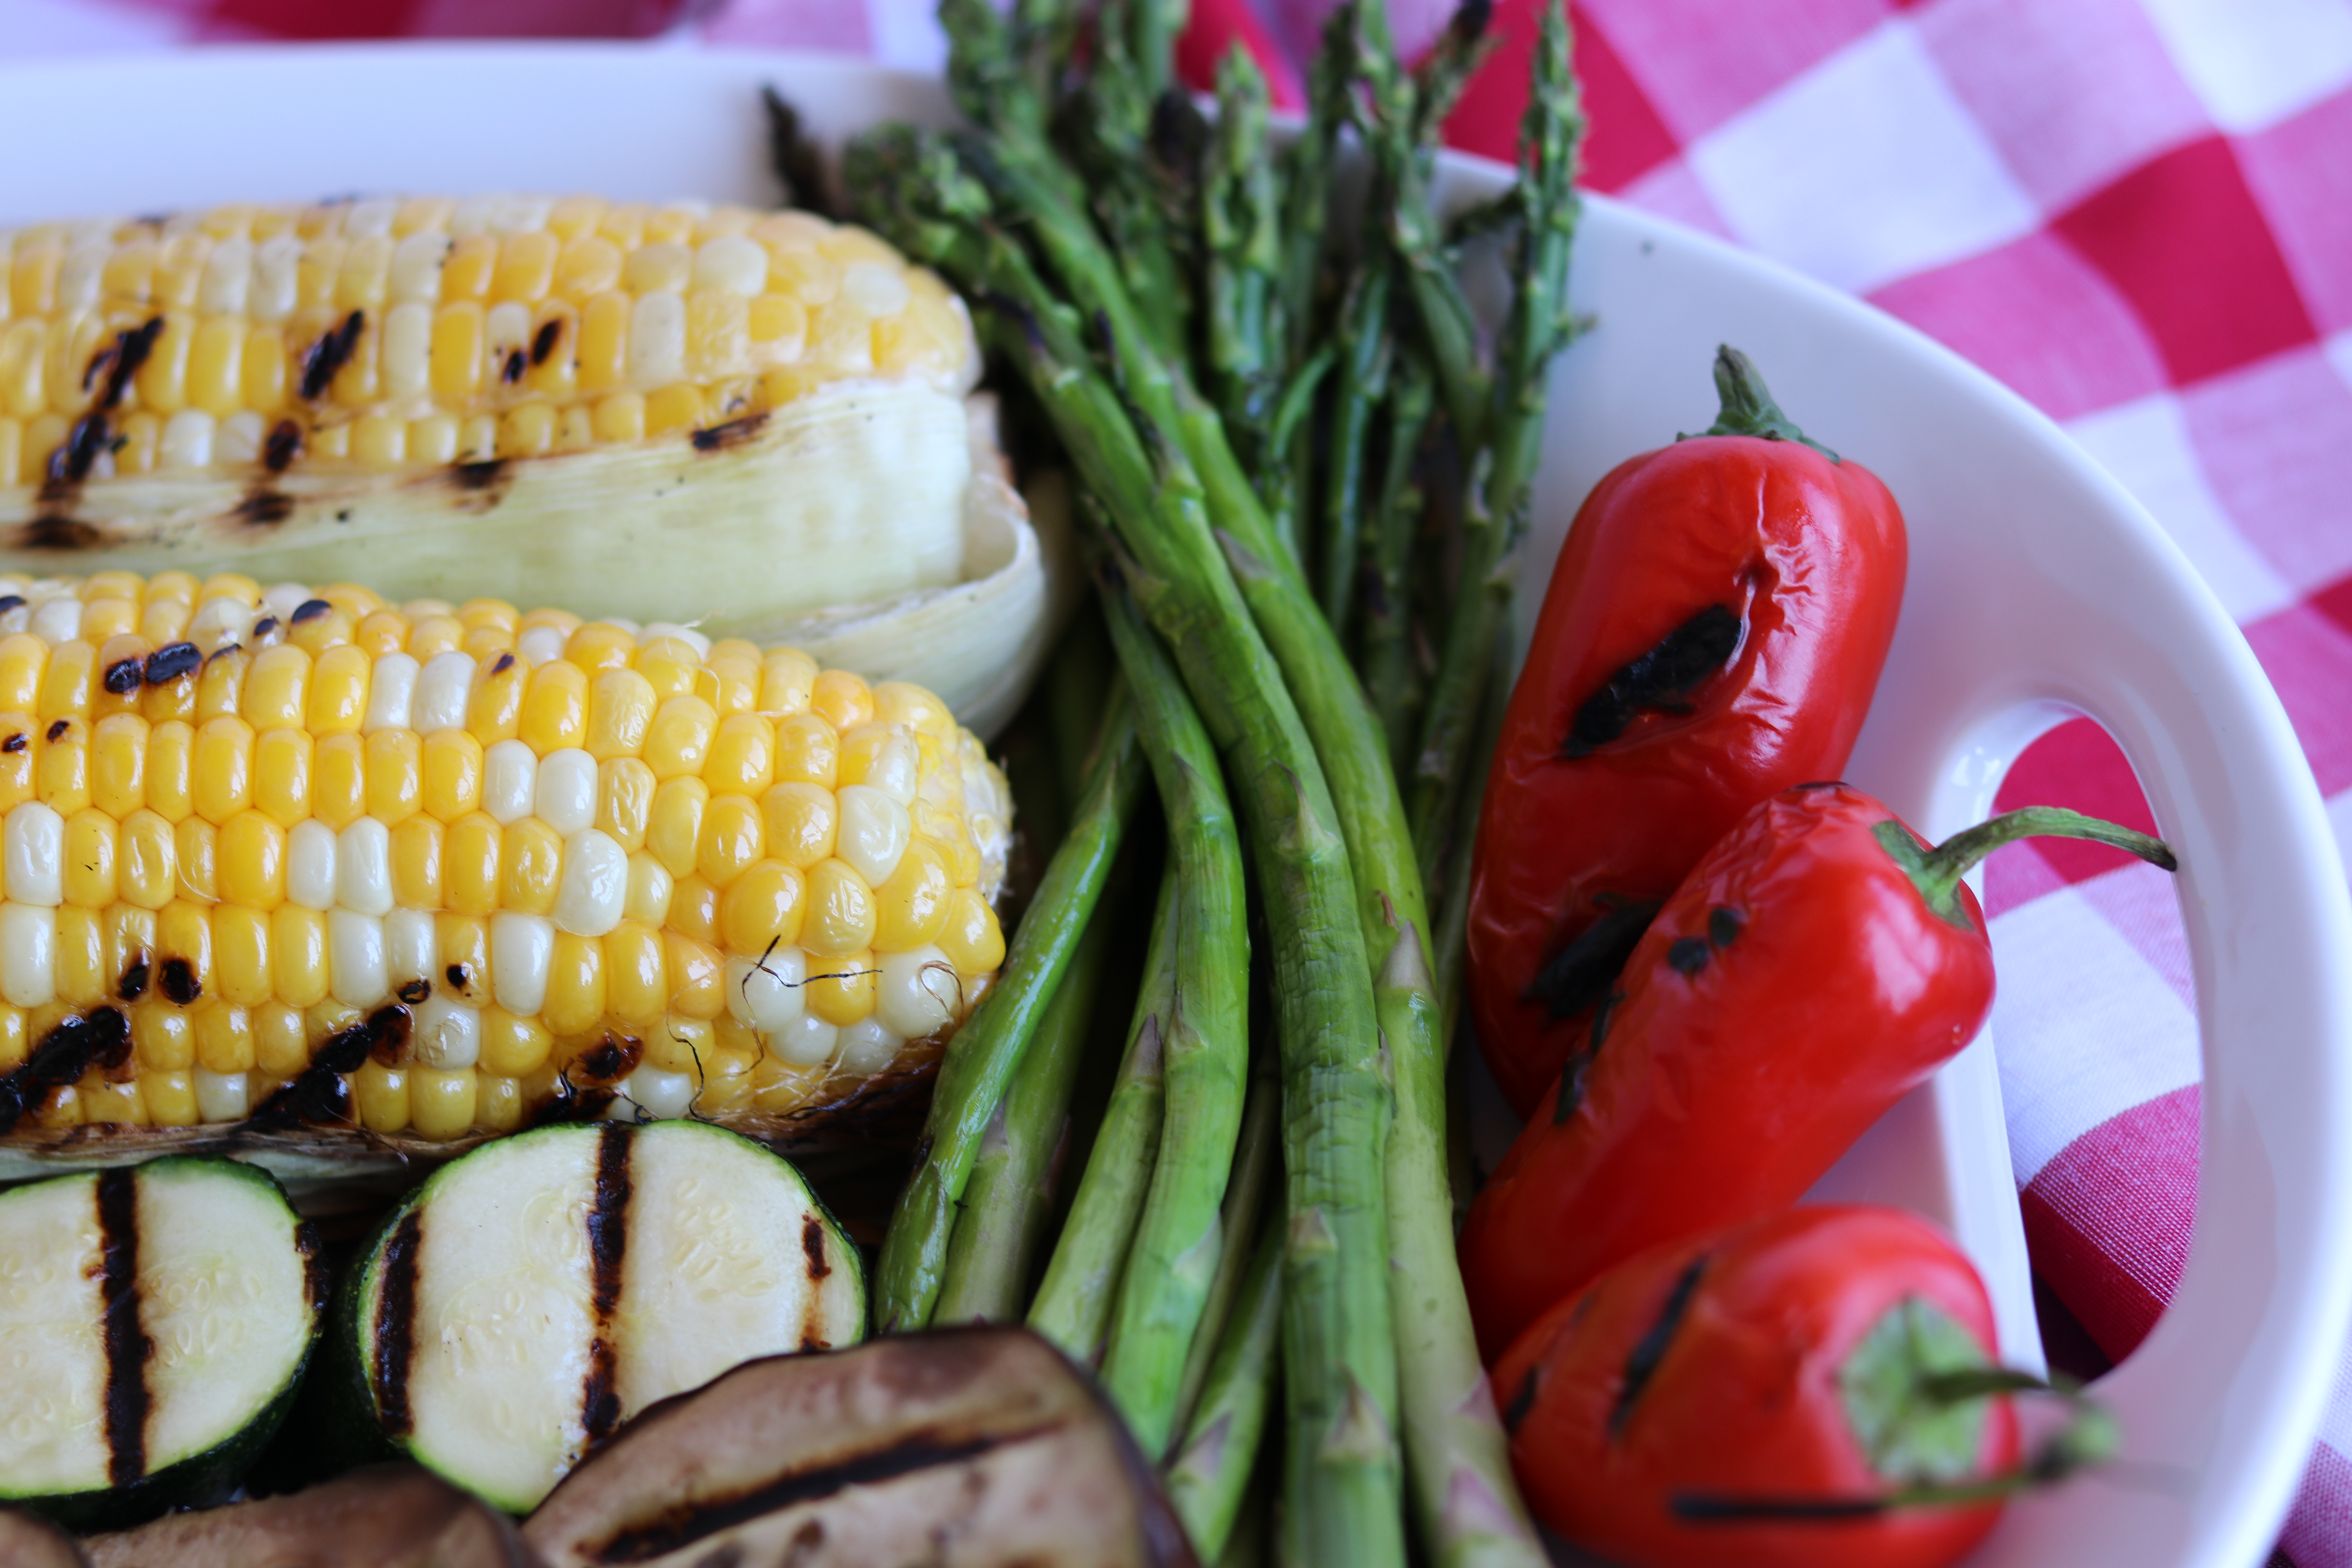 Another image of freshly grilled vegetables.